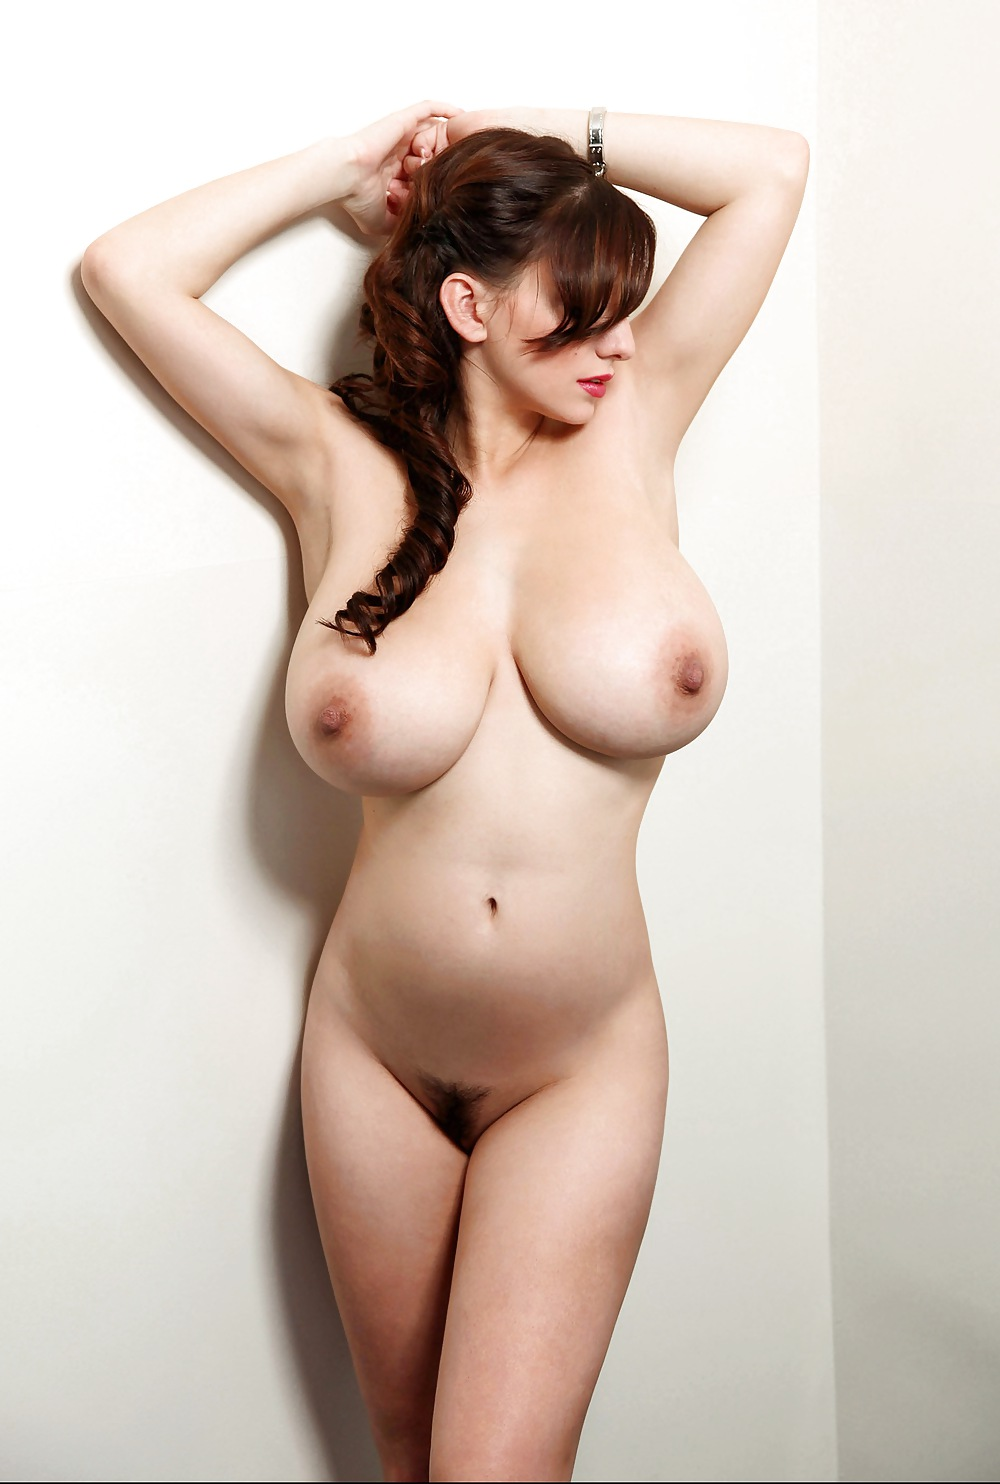 Teen virgin nude